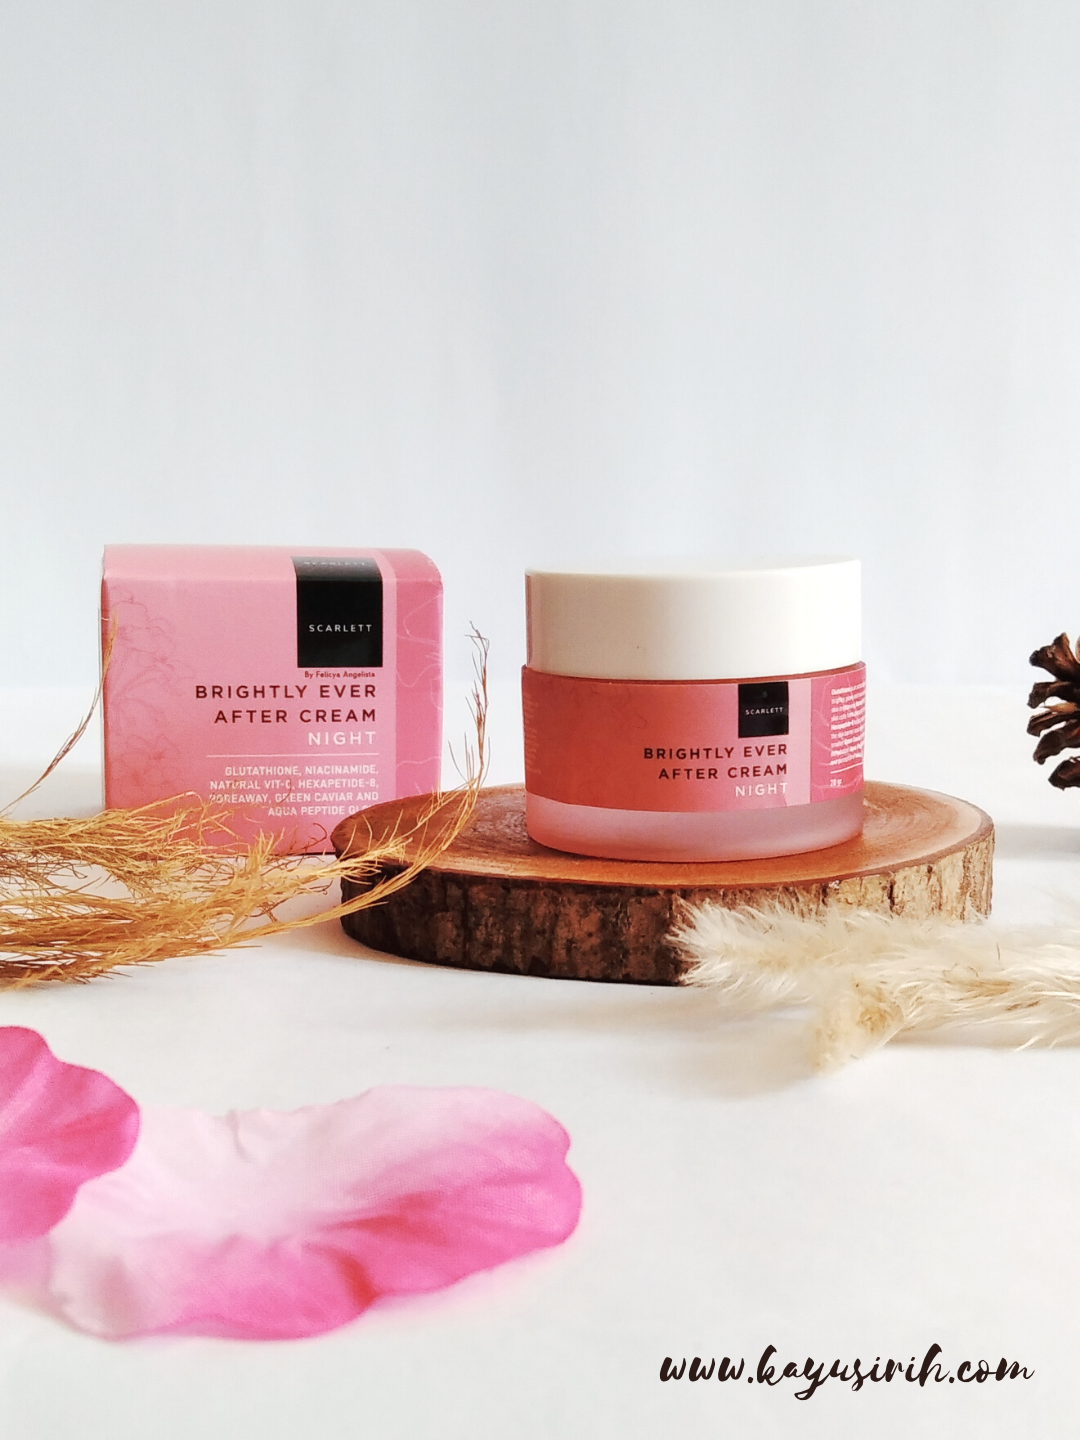 Review Scarlett Brightly Ever After Night Cream